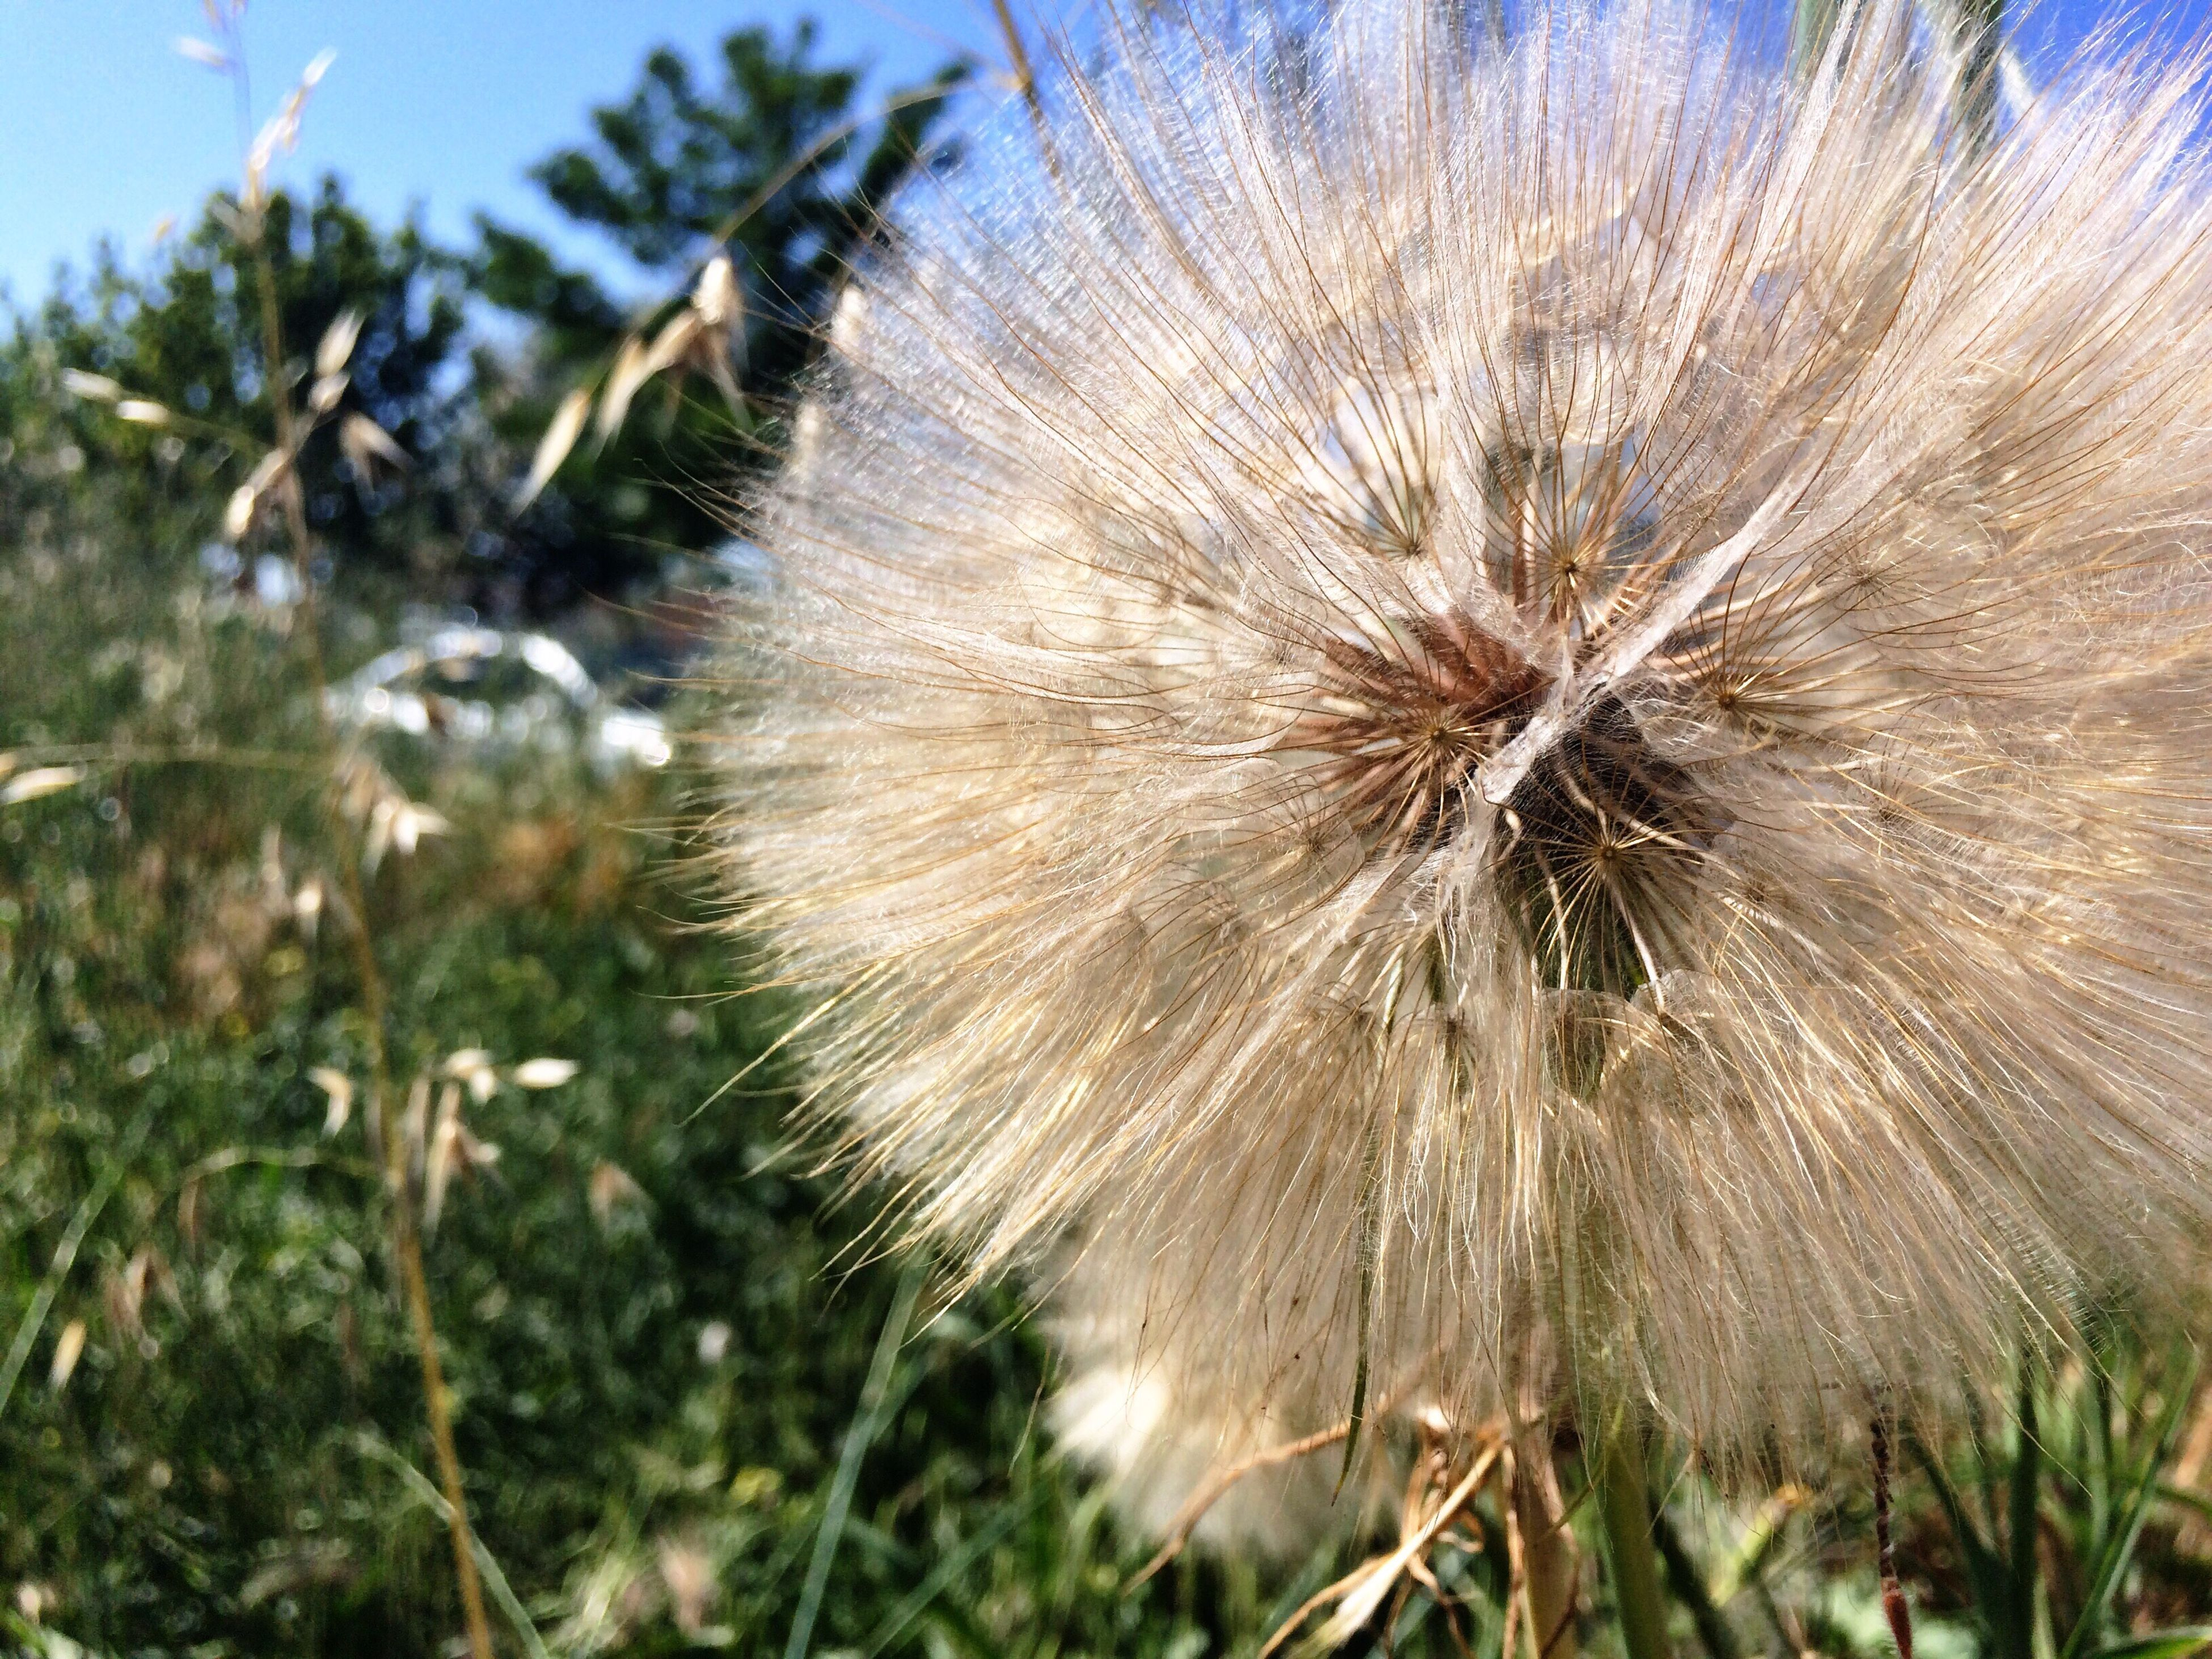 flower, dandelion, nature, plant, growth, fragility, close-up, beauty in nature, flower head, uncultivated, focus on foreground, no people, outdoors, freshness, day, grass